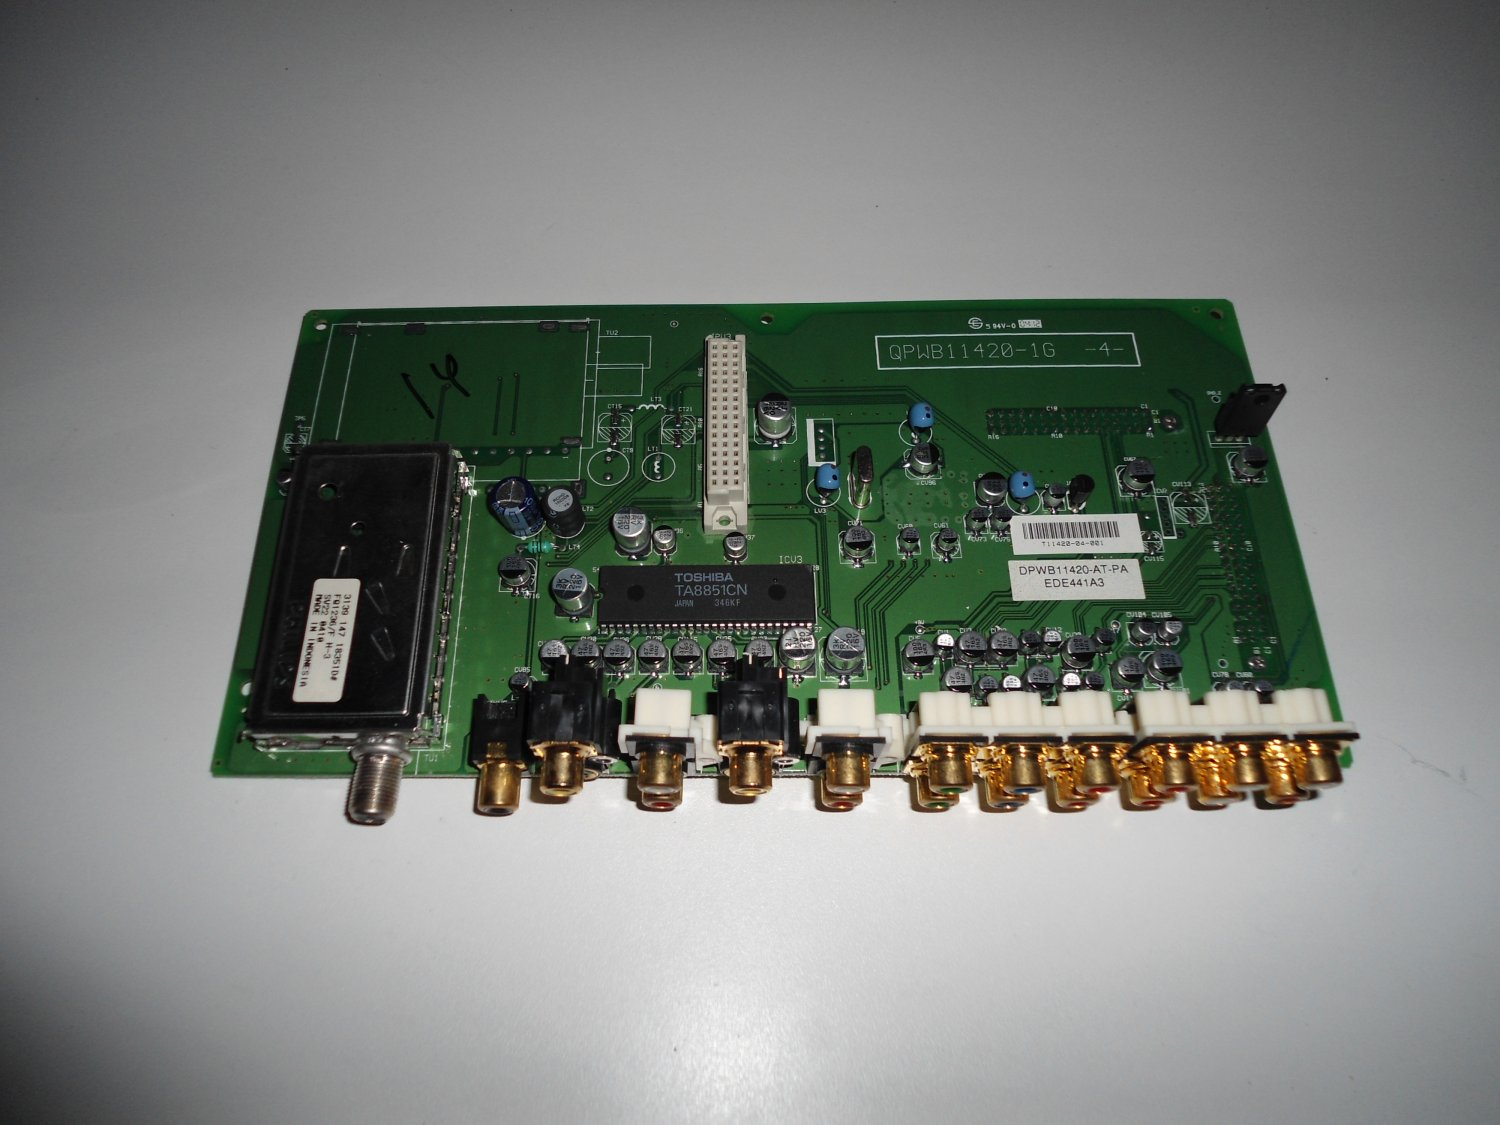 Philips DPWB11420-AT-PA CBA AV Module